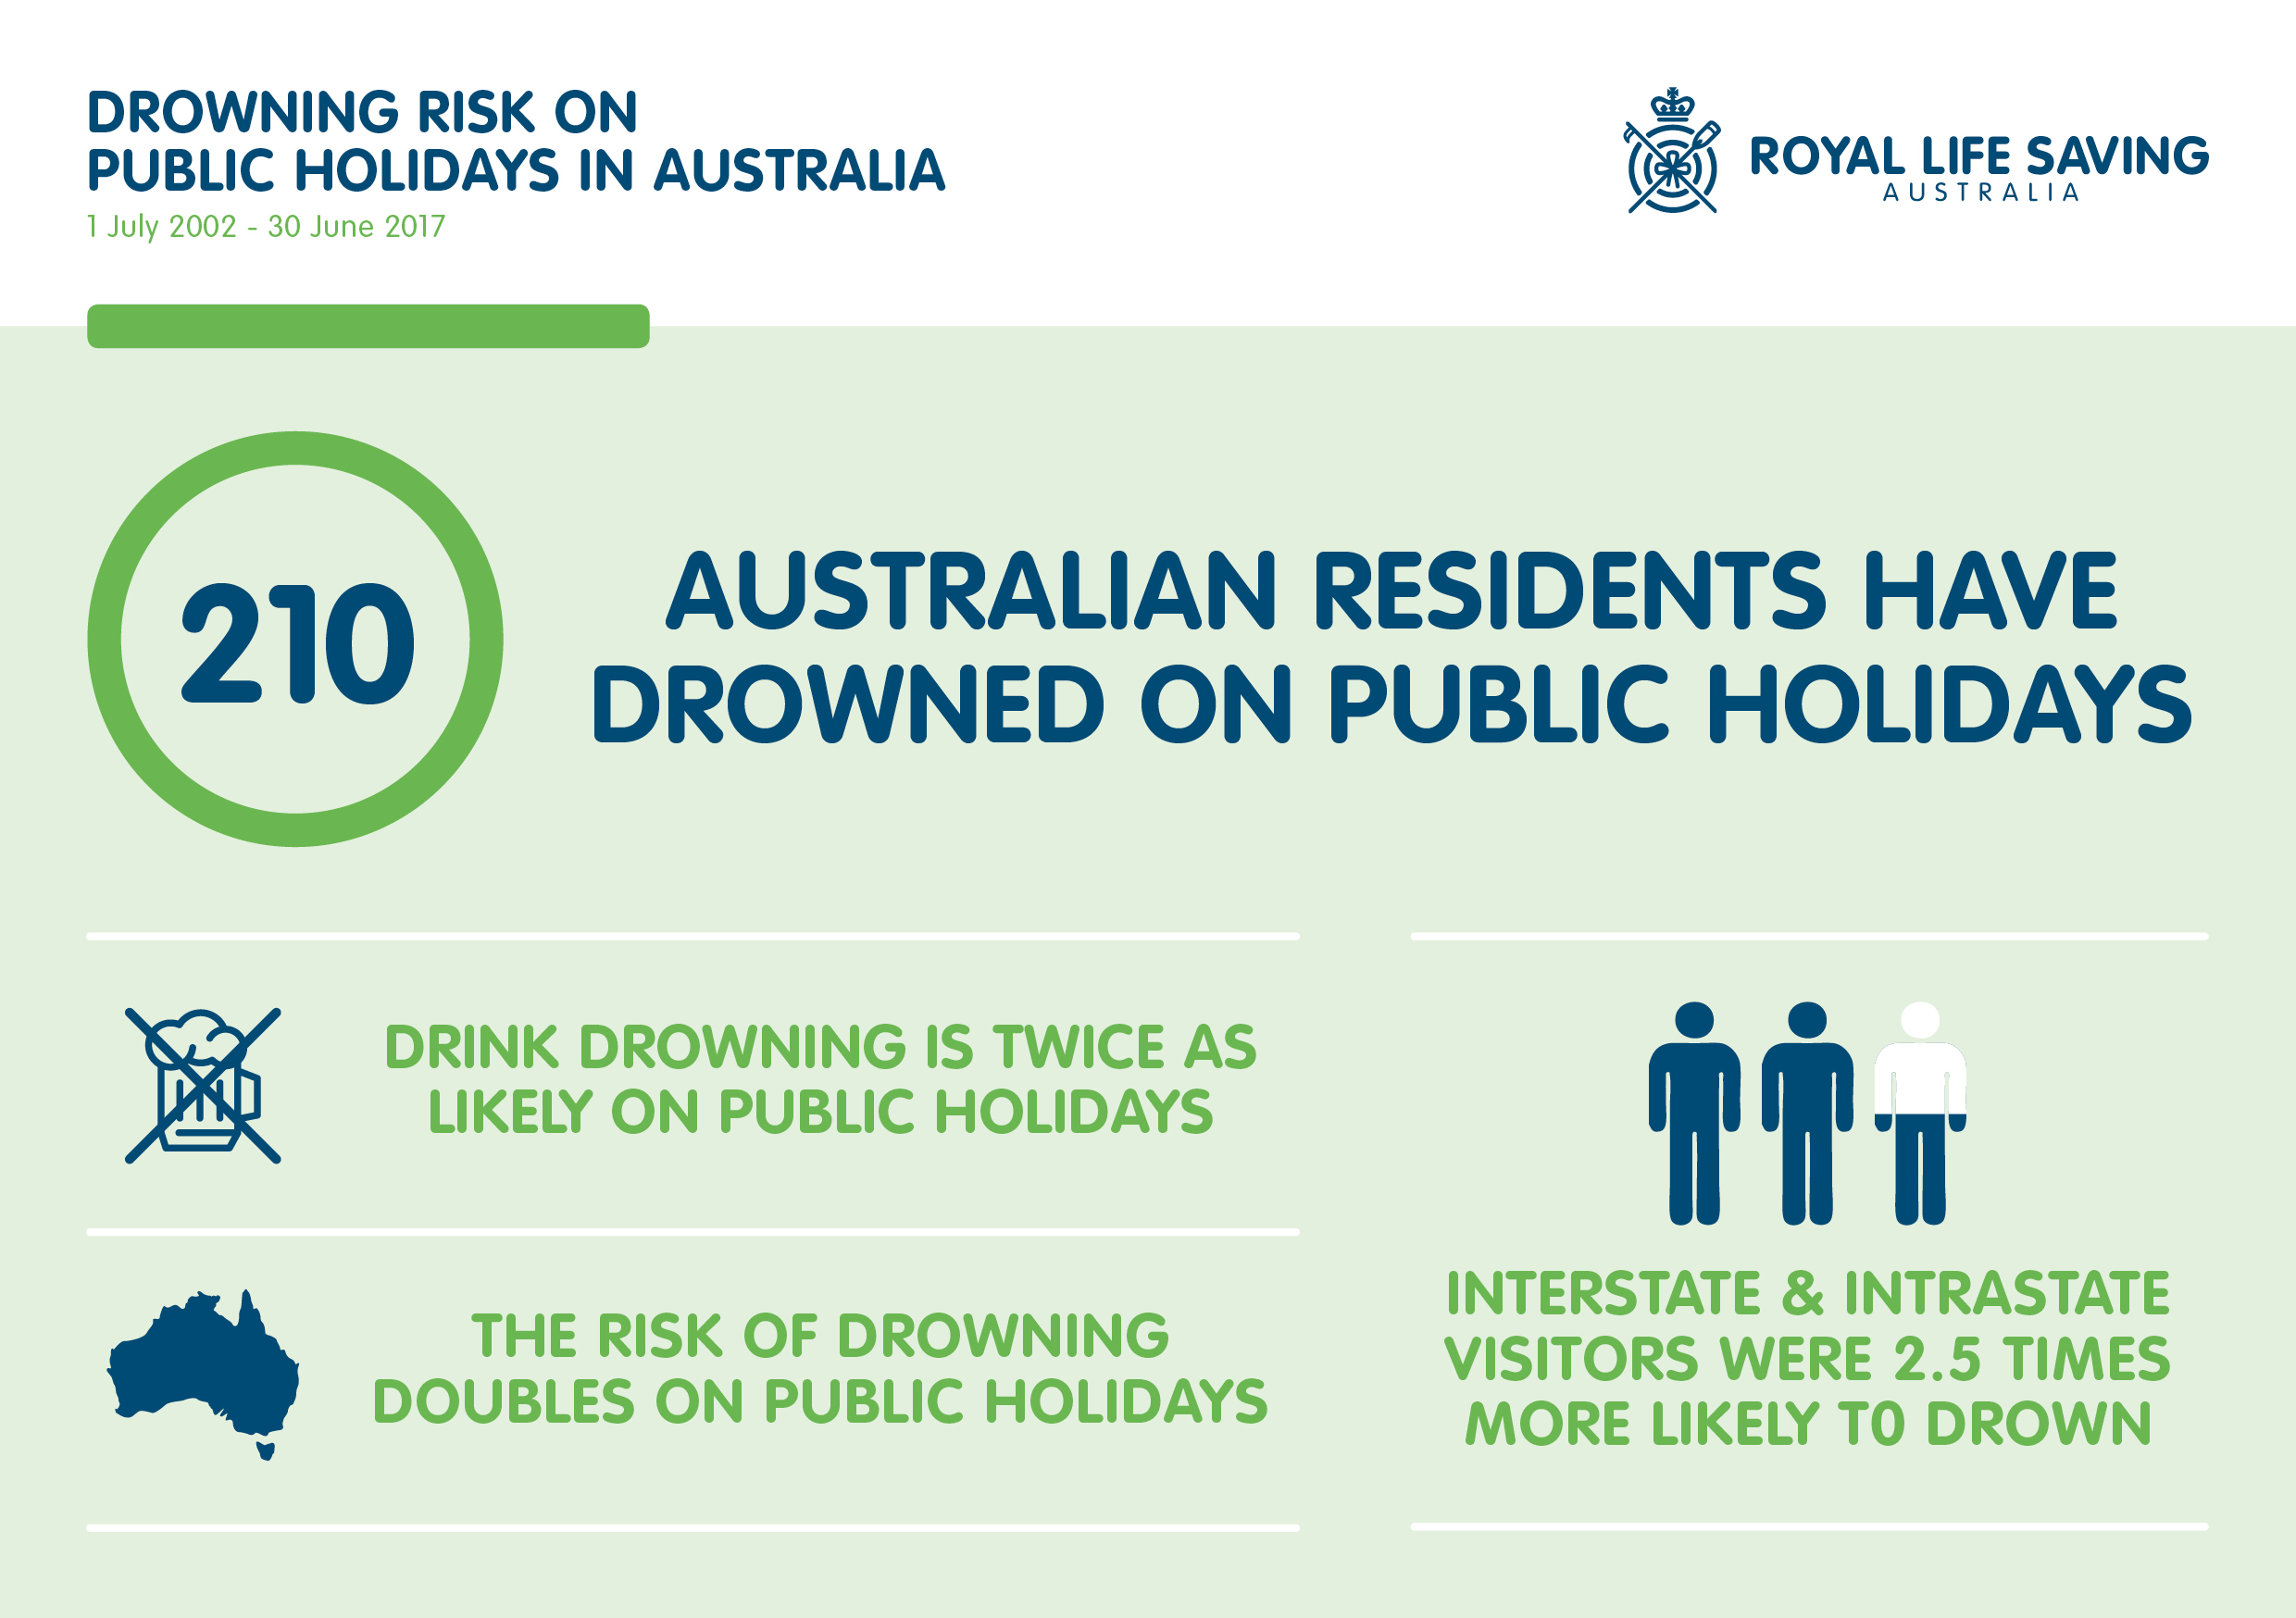 Australians twice as likely to drown on public holidays